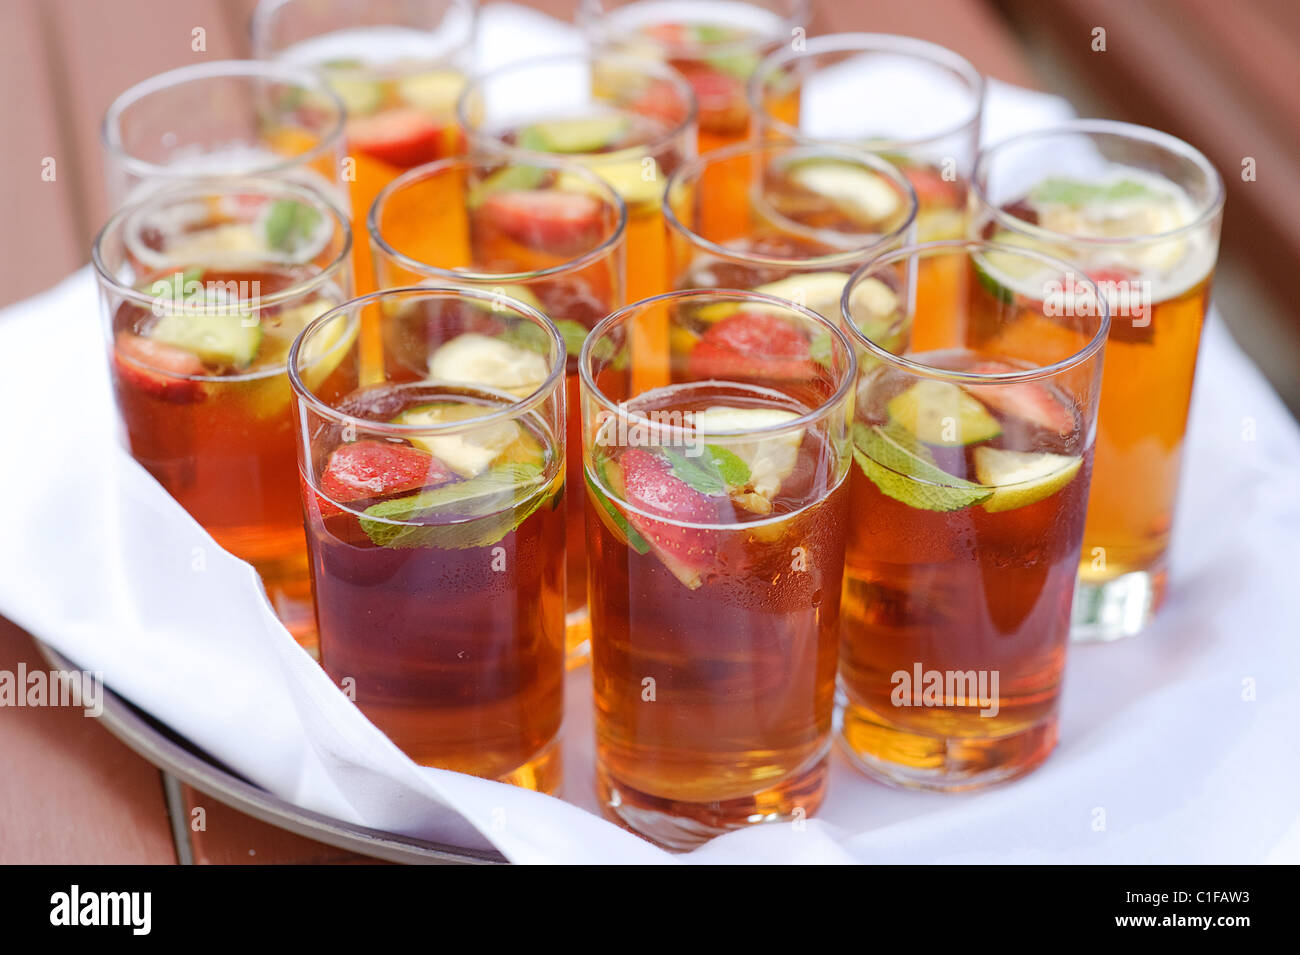 glasses on a tray with pimms cocktail fruit - Stock Image